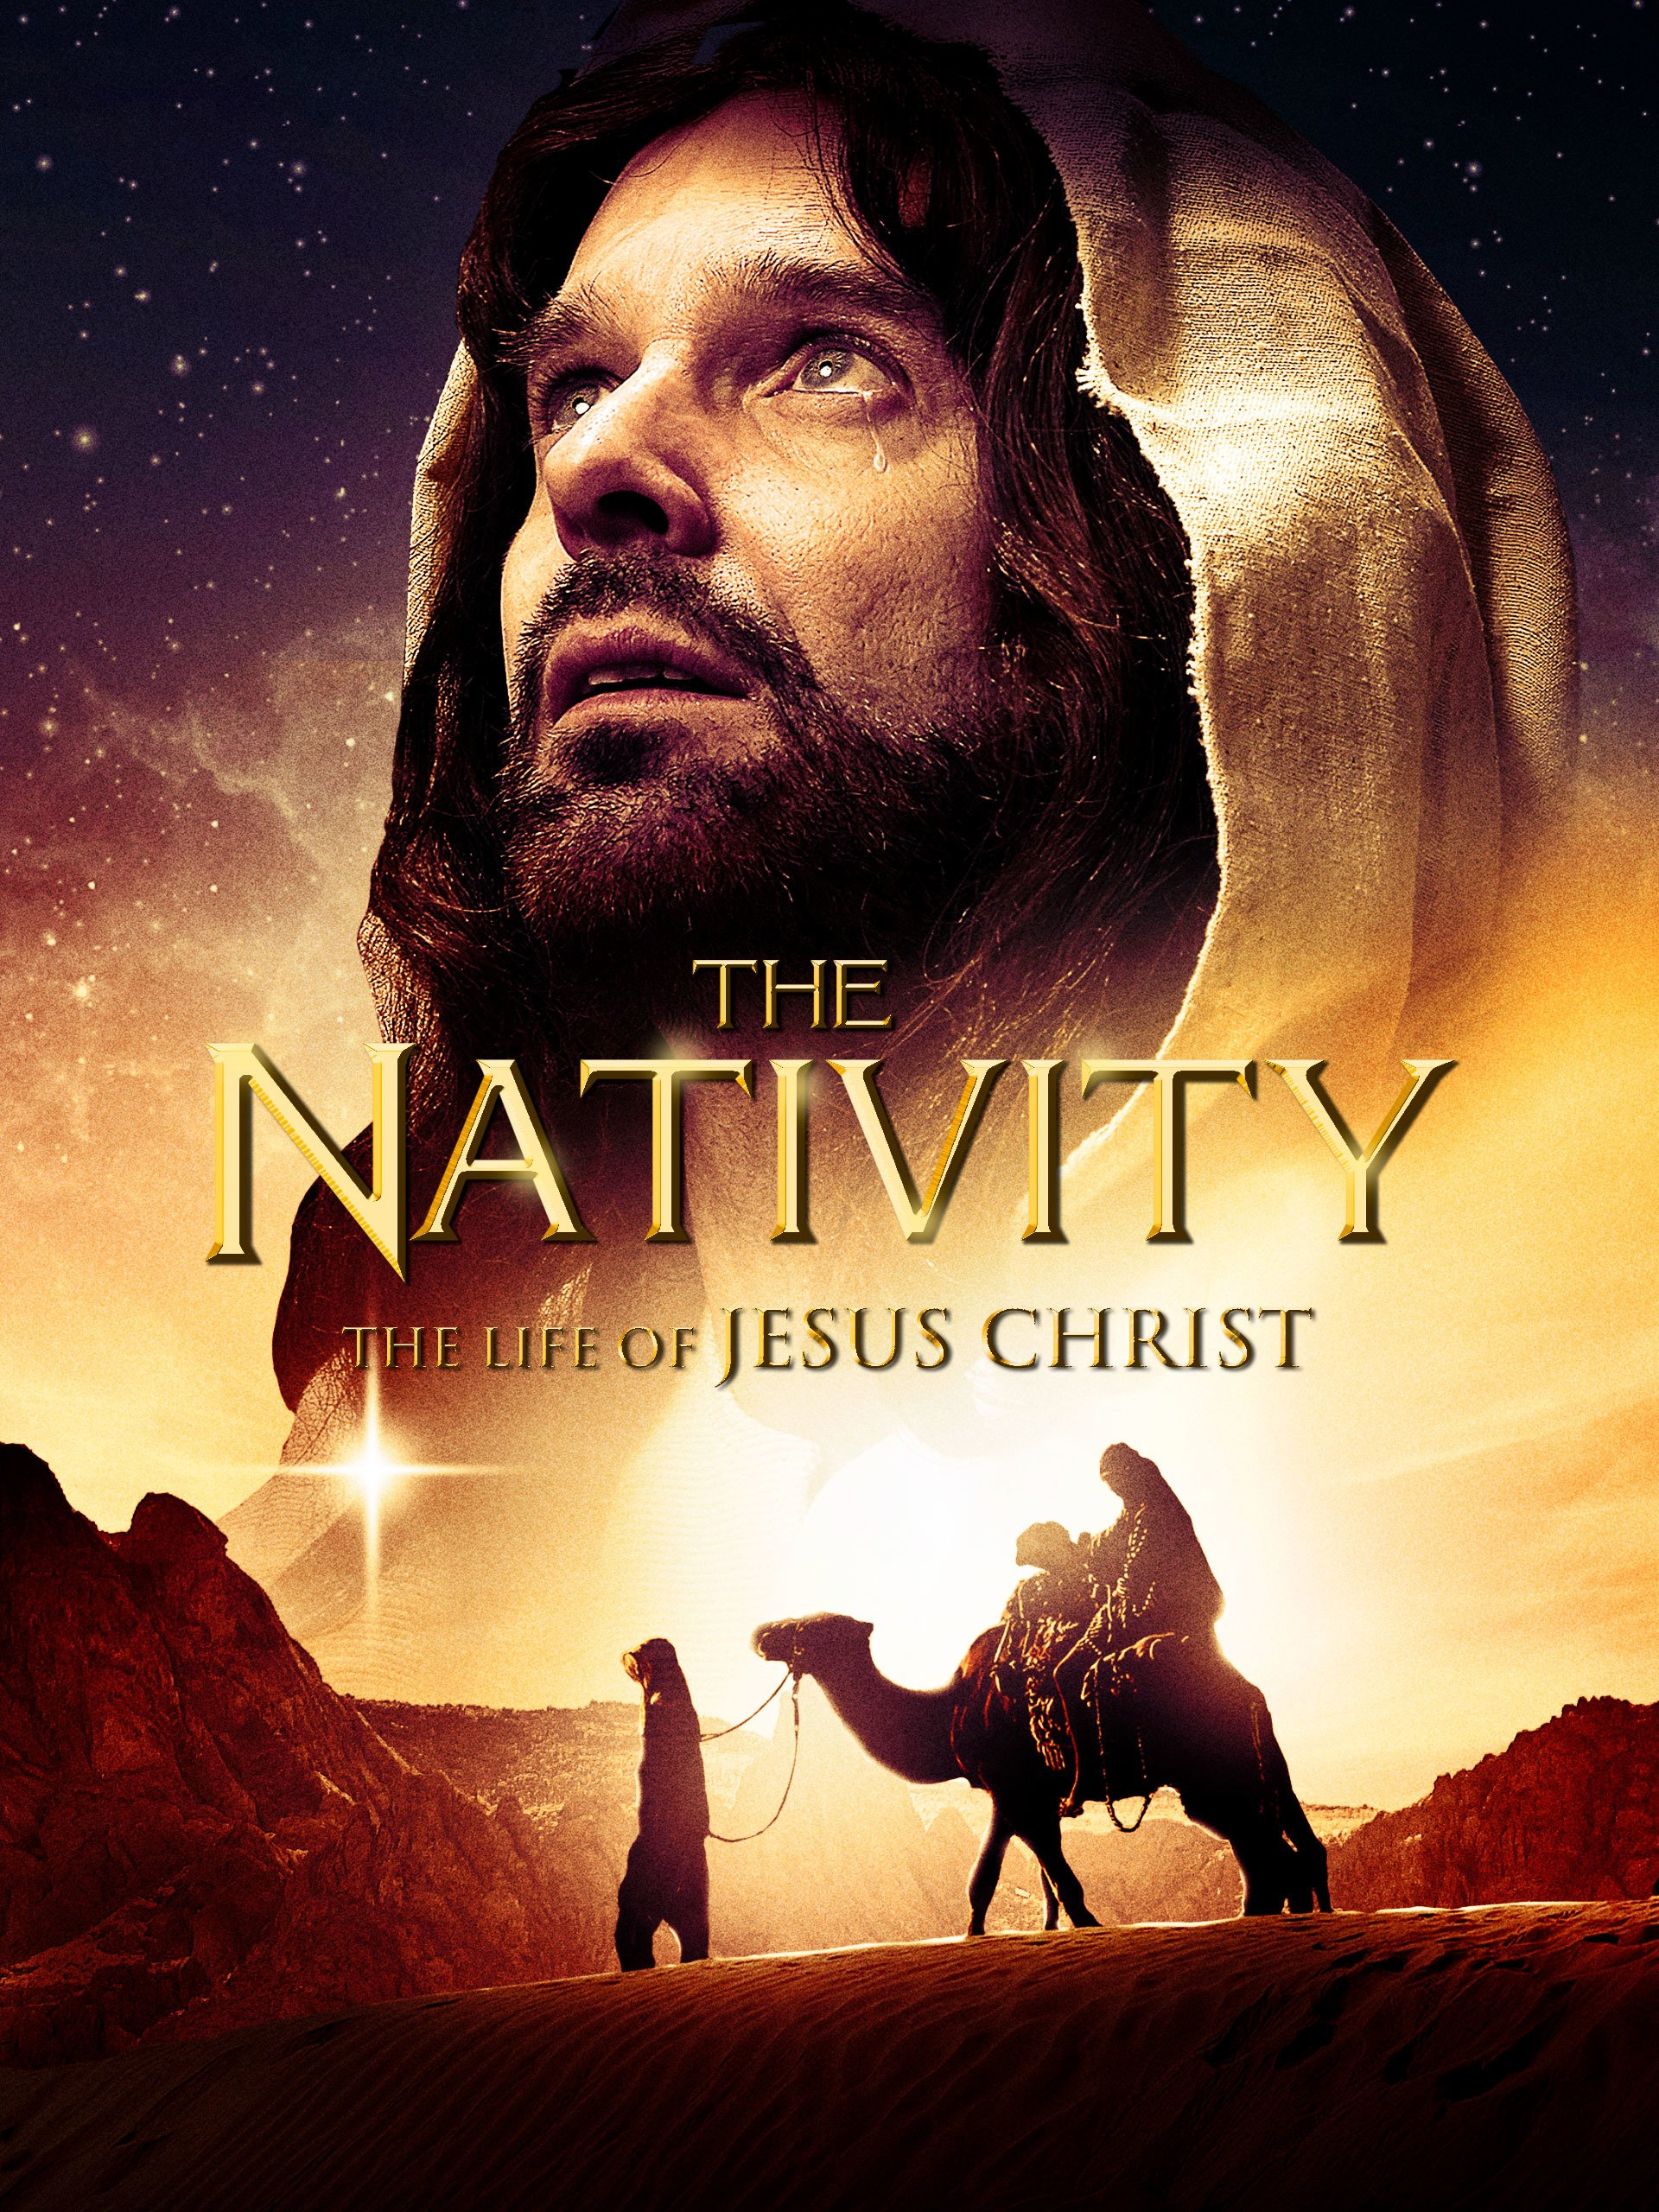 The Nativity: The Life Of Jesus Christ